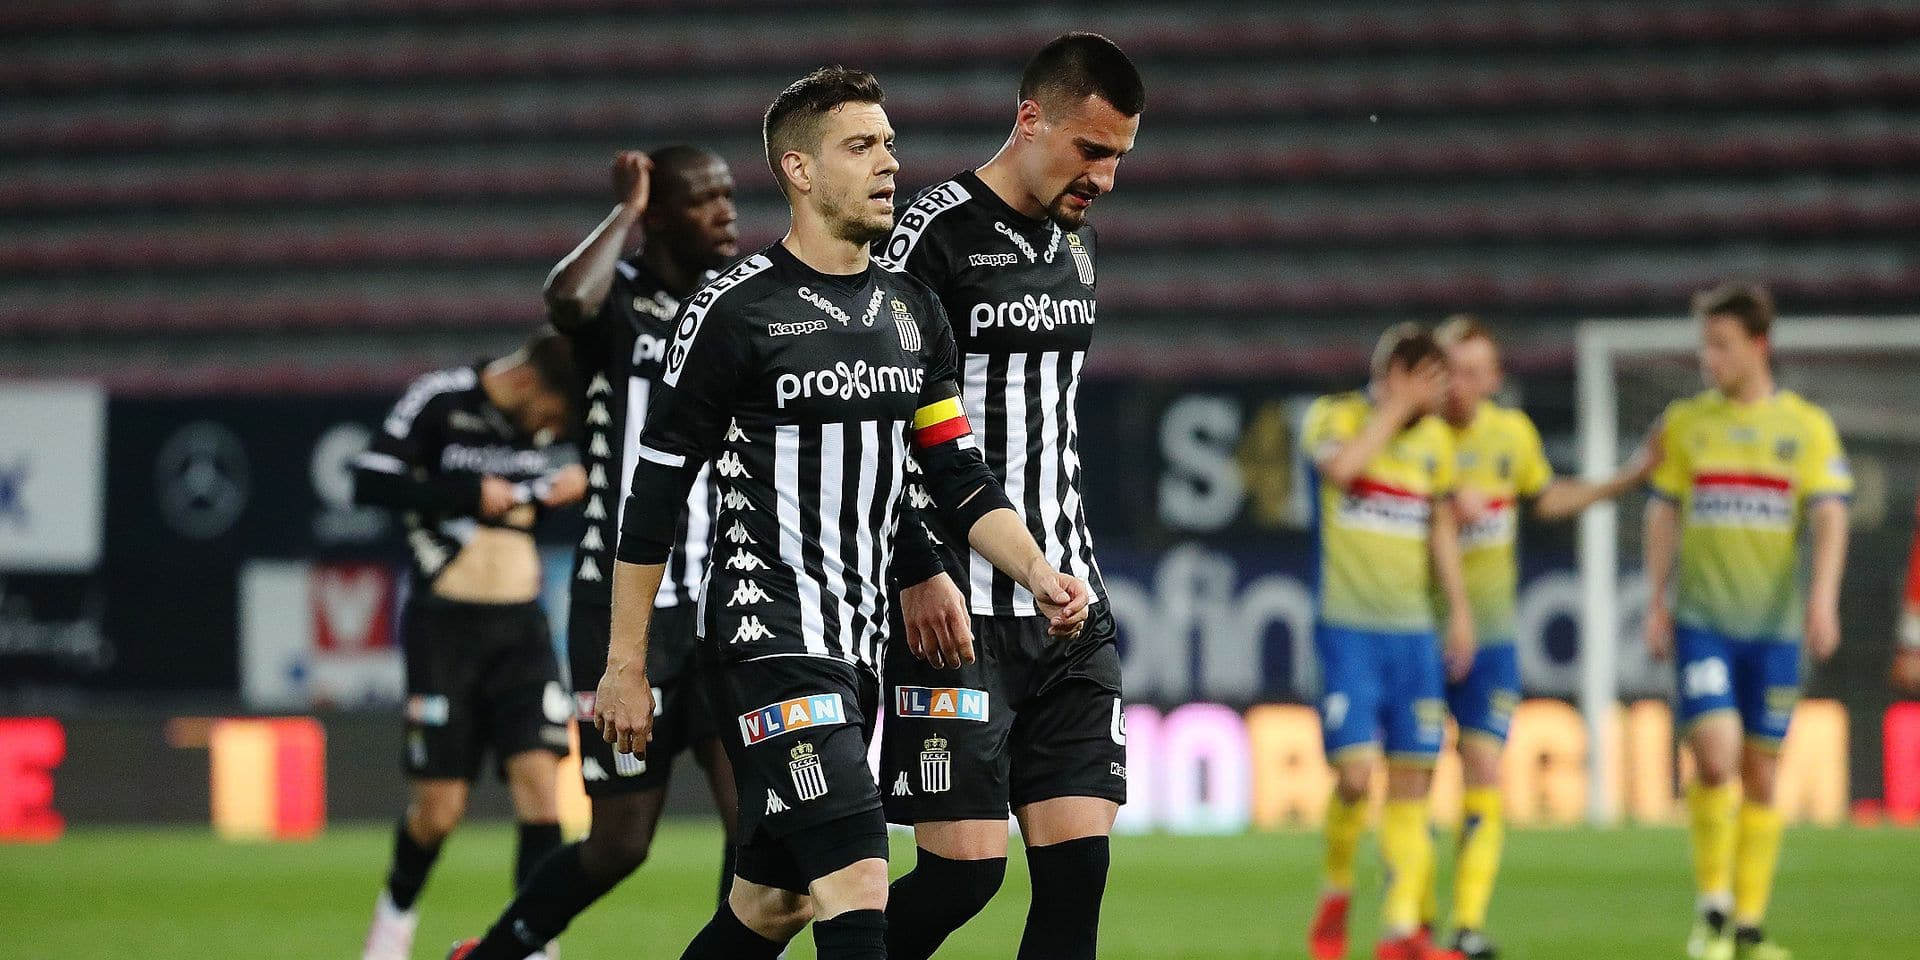 Charleroi's Francisco Javier Martos and Charleroi's Gjoko Zajkov pictured during a soccer game between Sporting Charleroi and KVC Westerlo, Sunday 14 April 2019 in Charleroi, on day 4 (out of 10) of the Play-off 2A of the 'Jupiler Pro League' Belgian soccer championship. BELGA PHOTO VIRGINIE LEFOUR